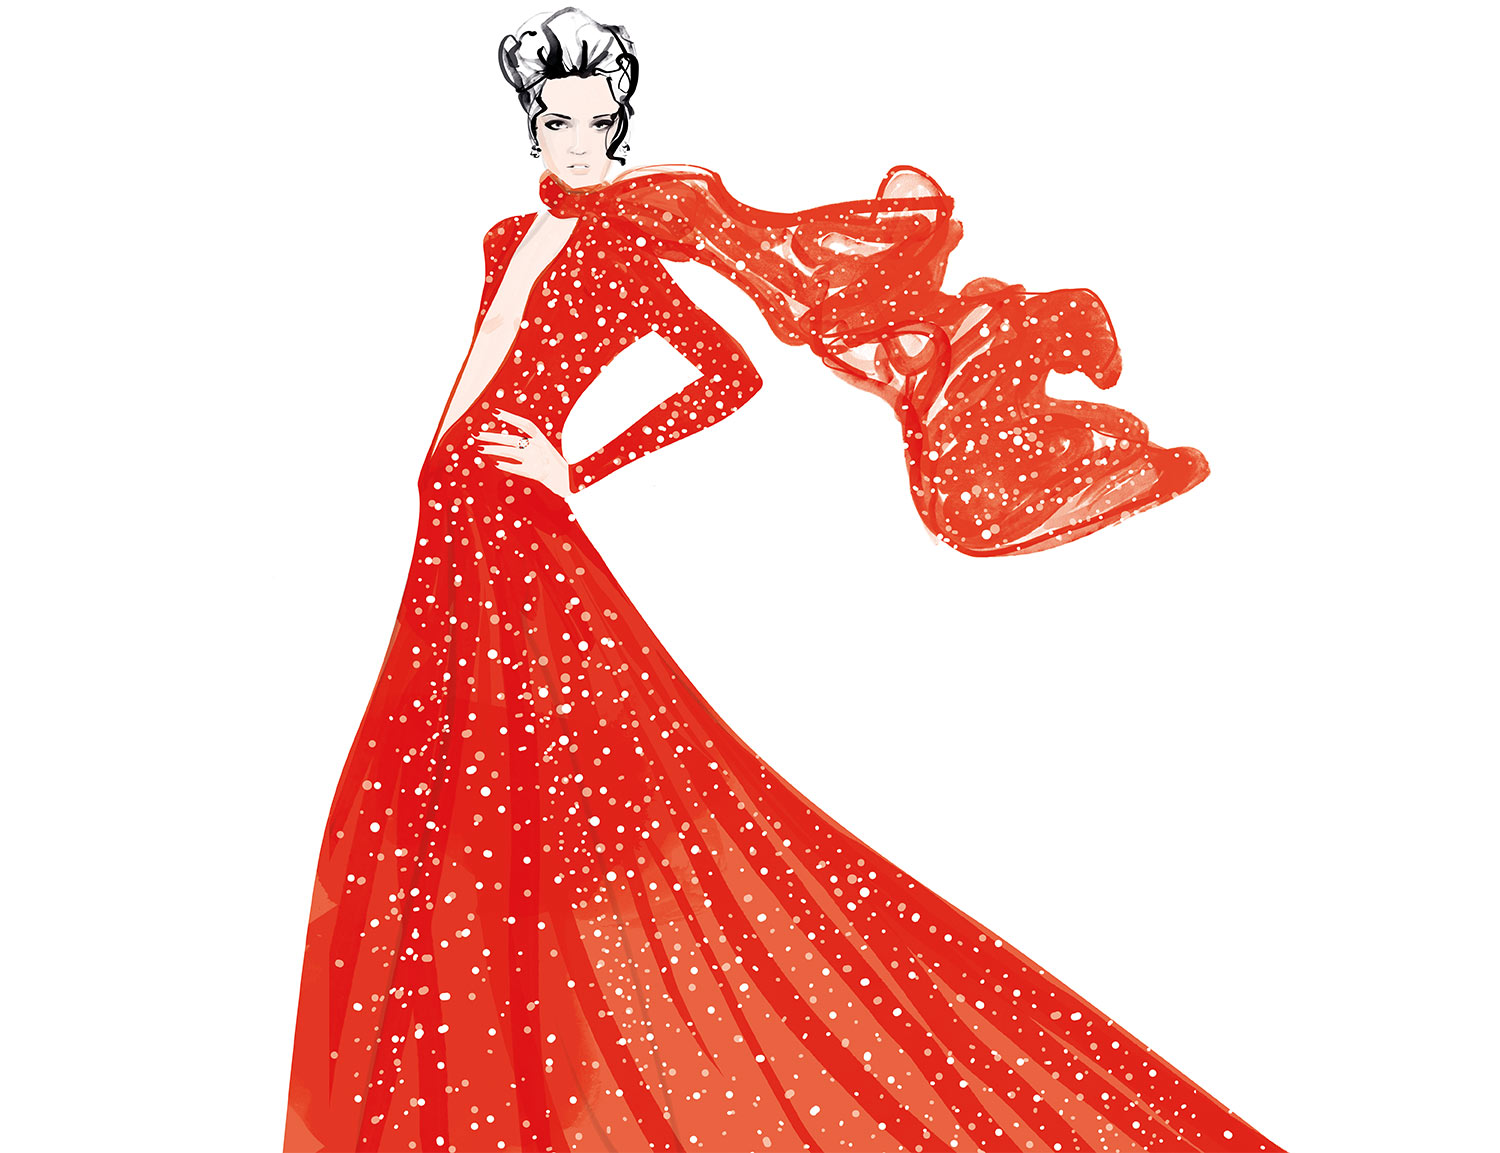 Red Dress Fashion illustration promo cards